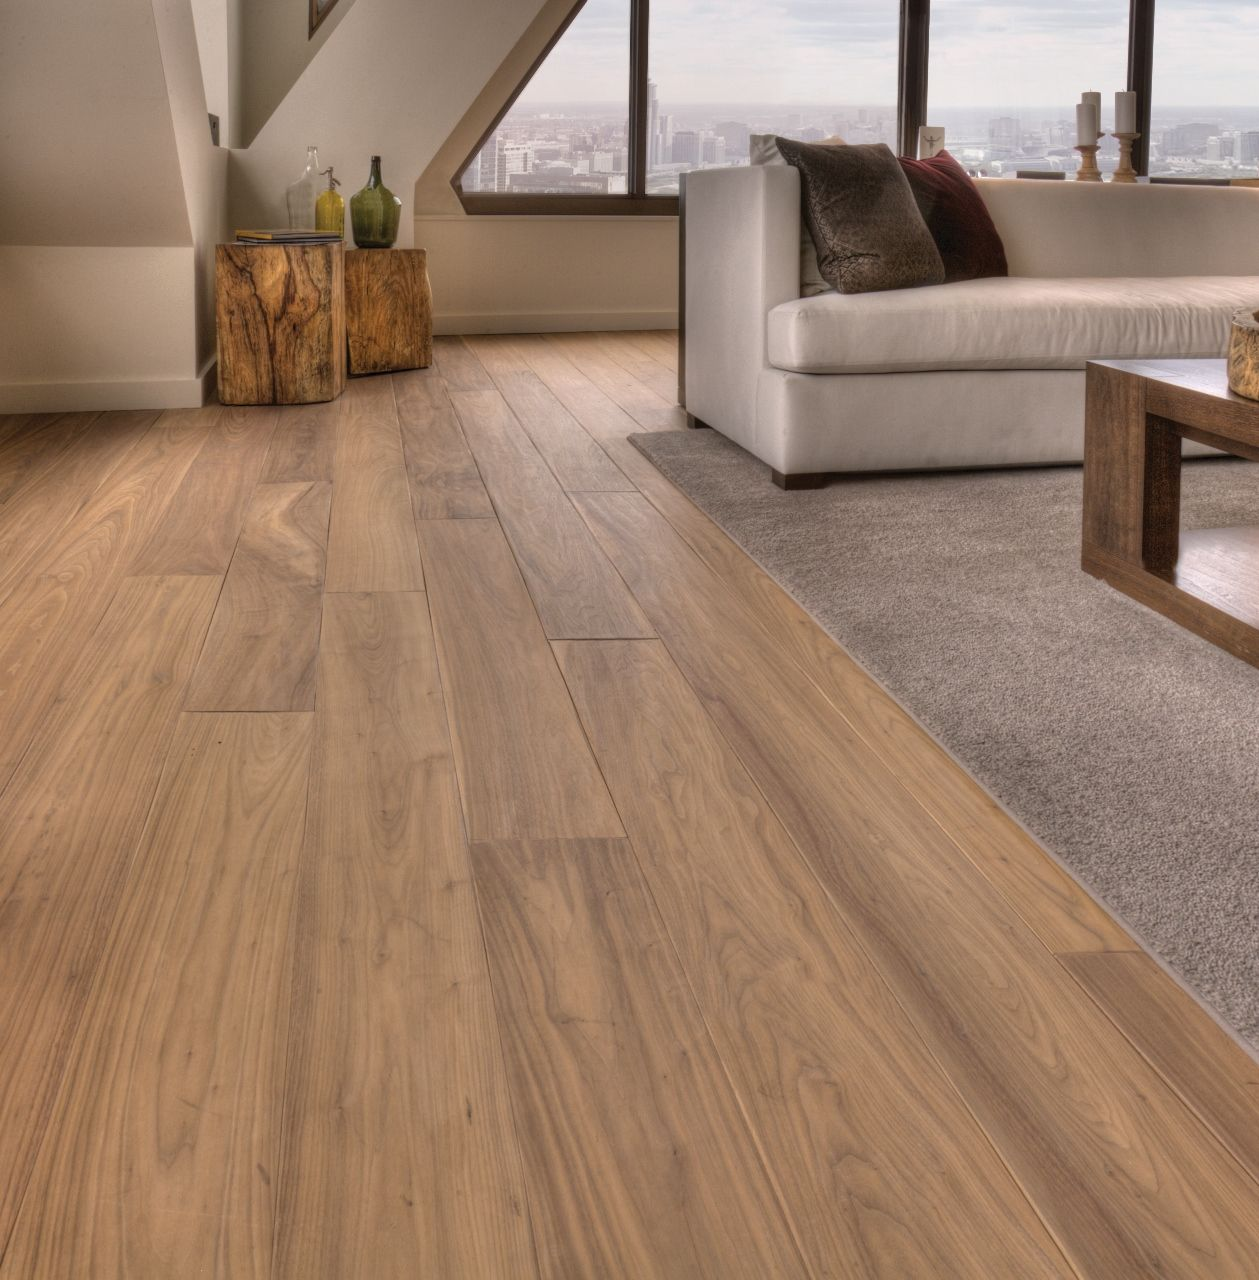 Fliesen Holzoptik Fischgrät Verlegen Carlisle Wide Plank Flooring In Distressed Walnut I Like